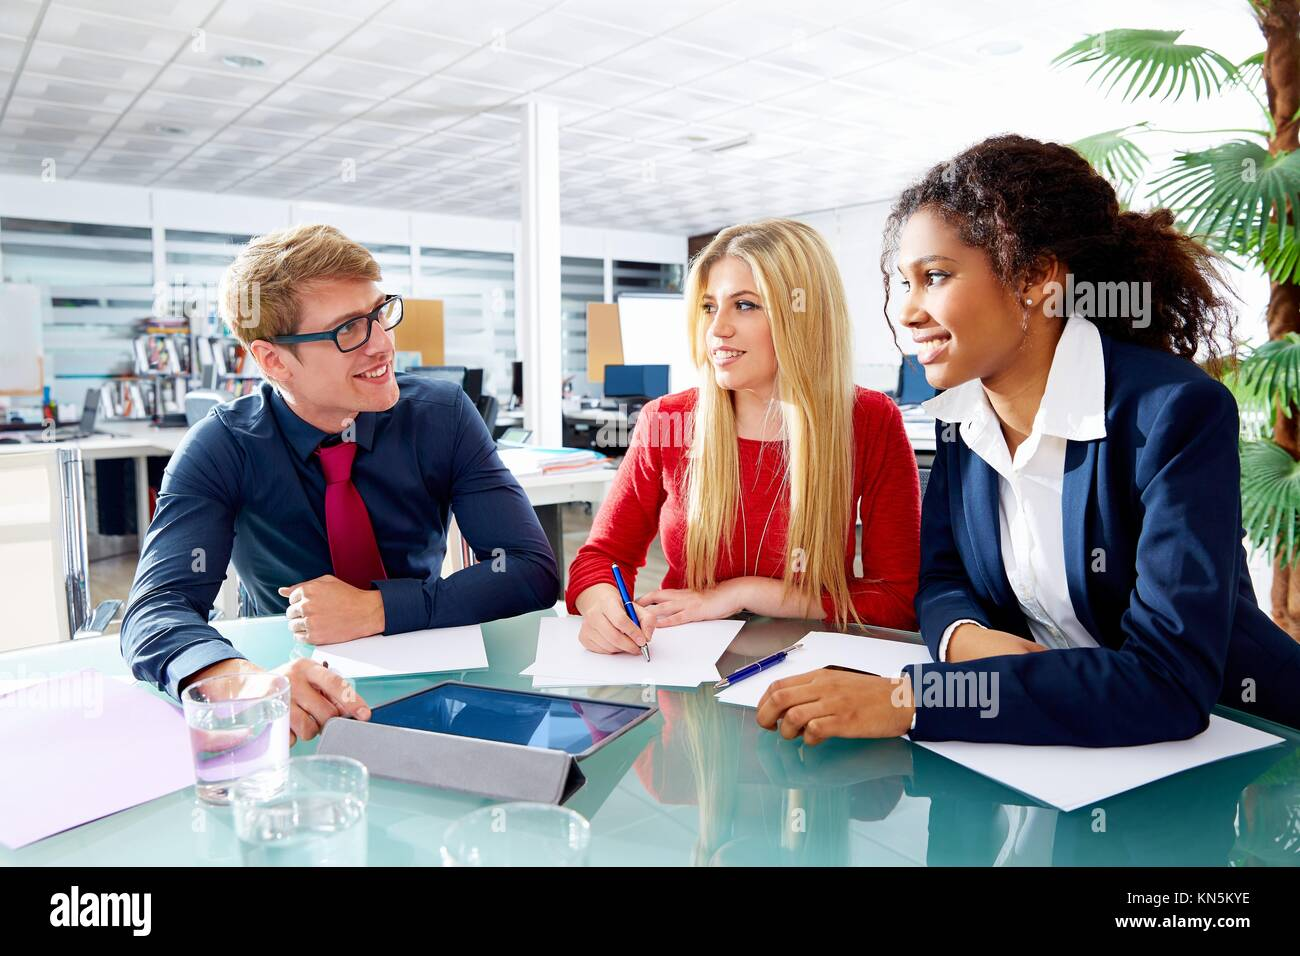 Executive business people team meeting at office teamwork young multiracial. - Stock Image